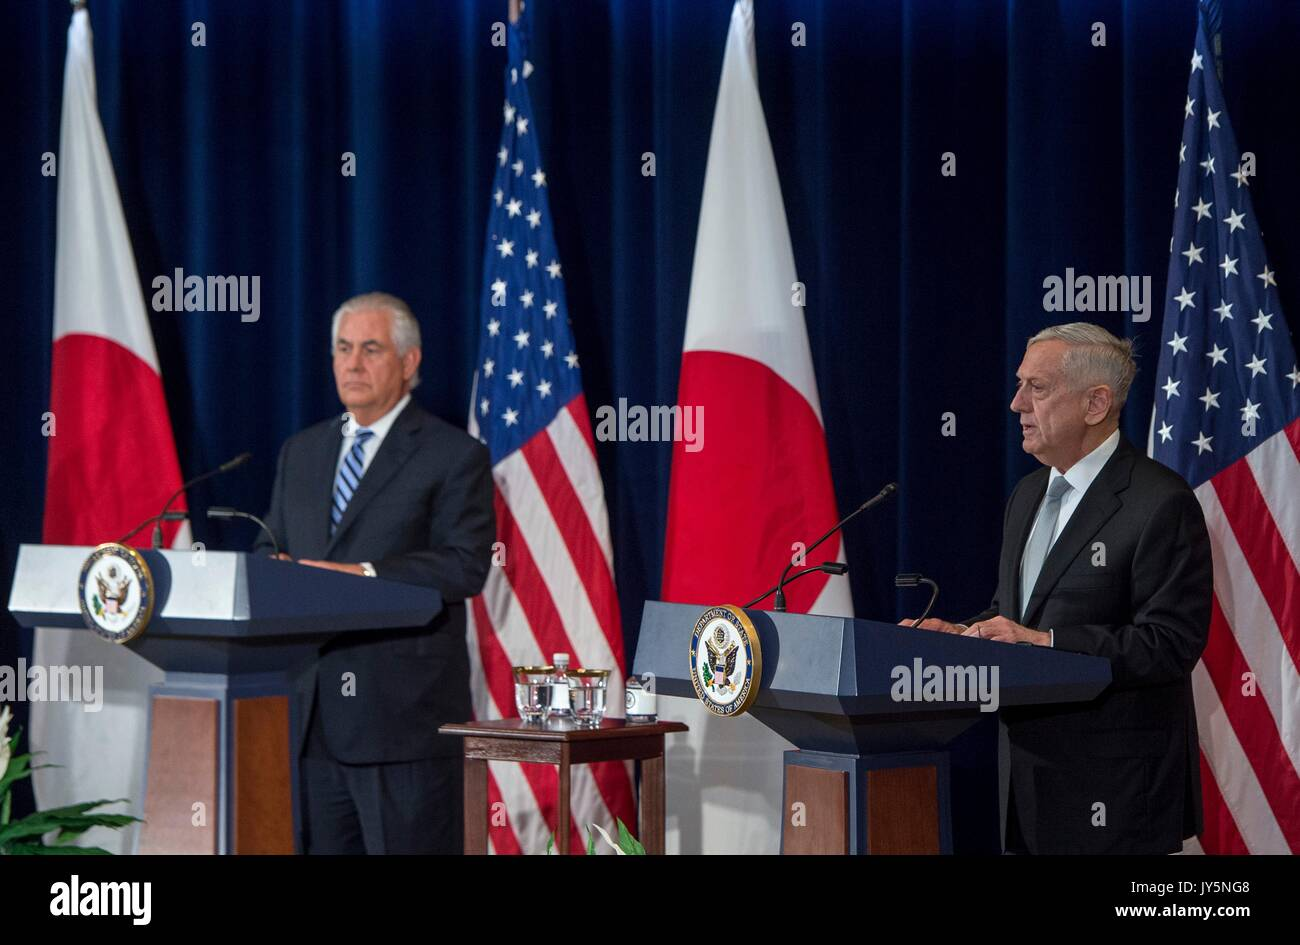 U.S. Defense Secretary Jim Mattis, right, and Secretary of State Rex Tillerson during a joint press conference following Stock Photo